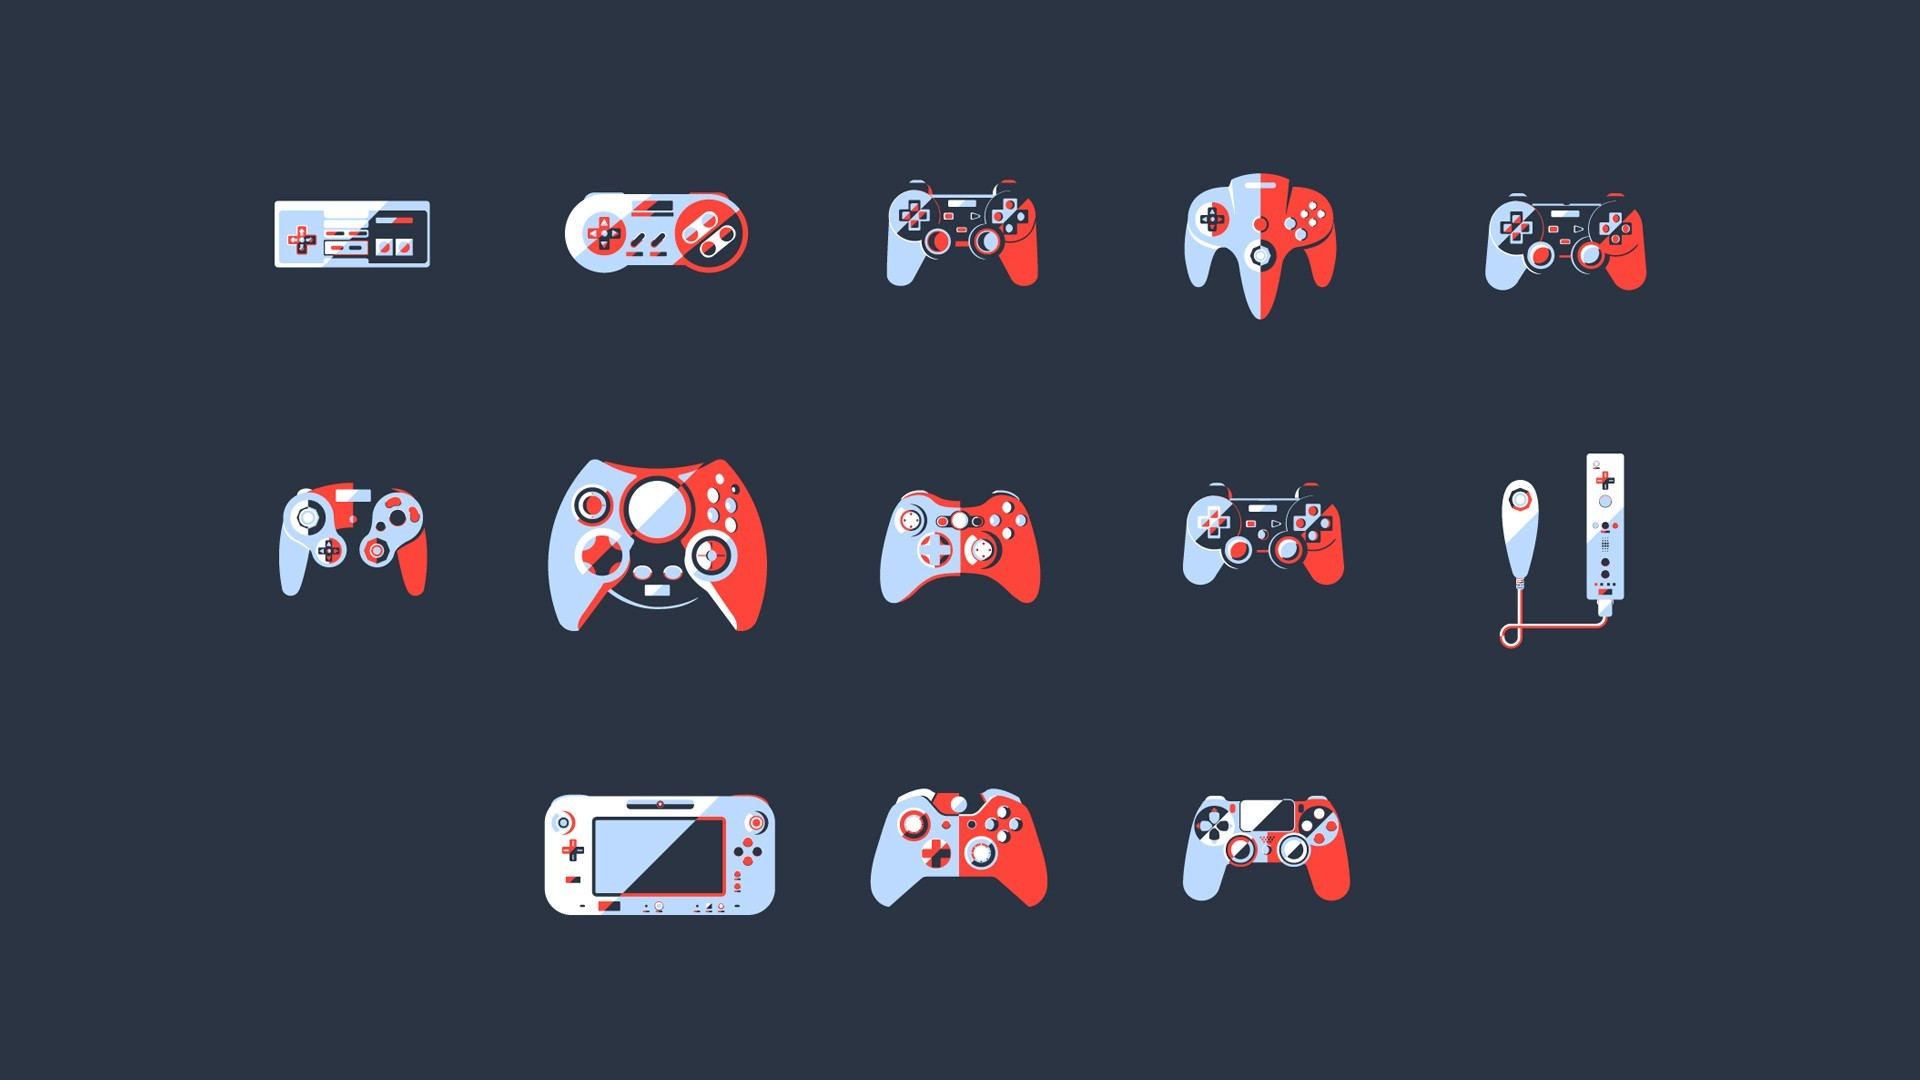 General video games controllers simple background PlayStation  Xbox Nintendo Entertainment System minimalism